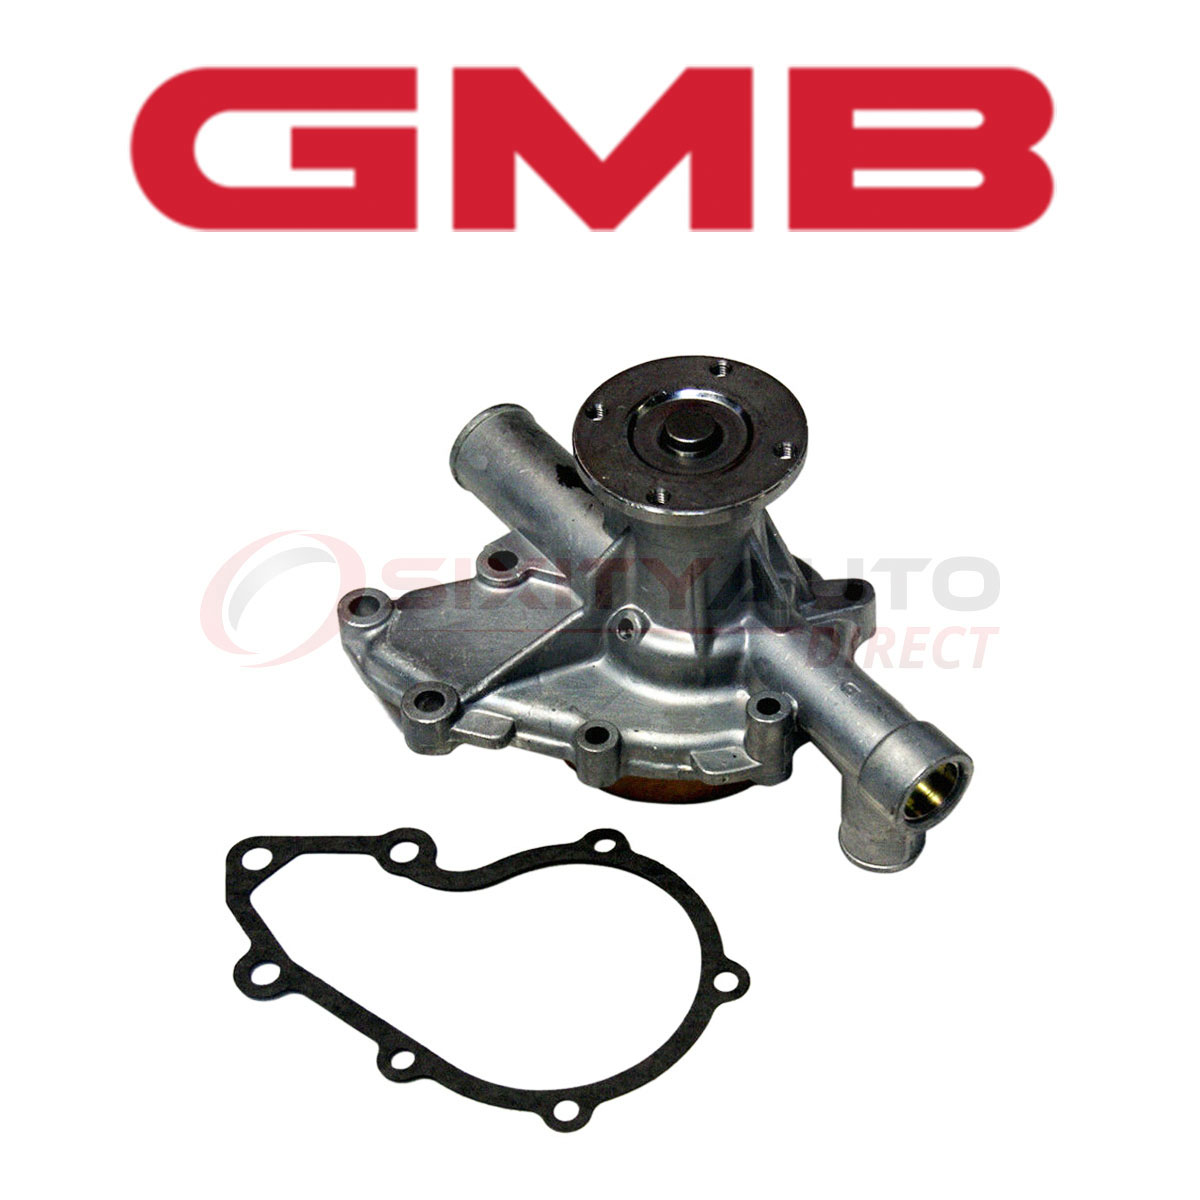 Gmb Water Pump For 1977-1983 Bmw 320i 1 8l 2 0l L4